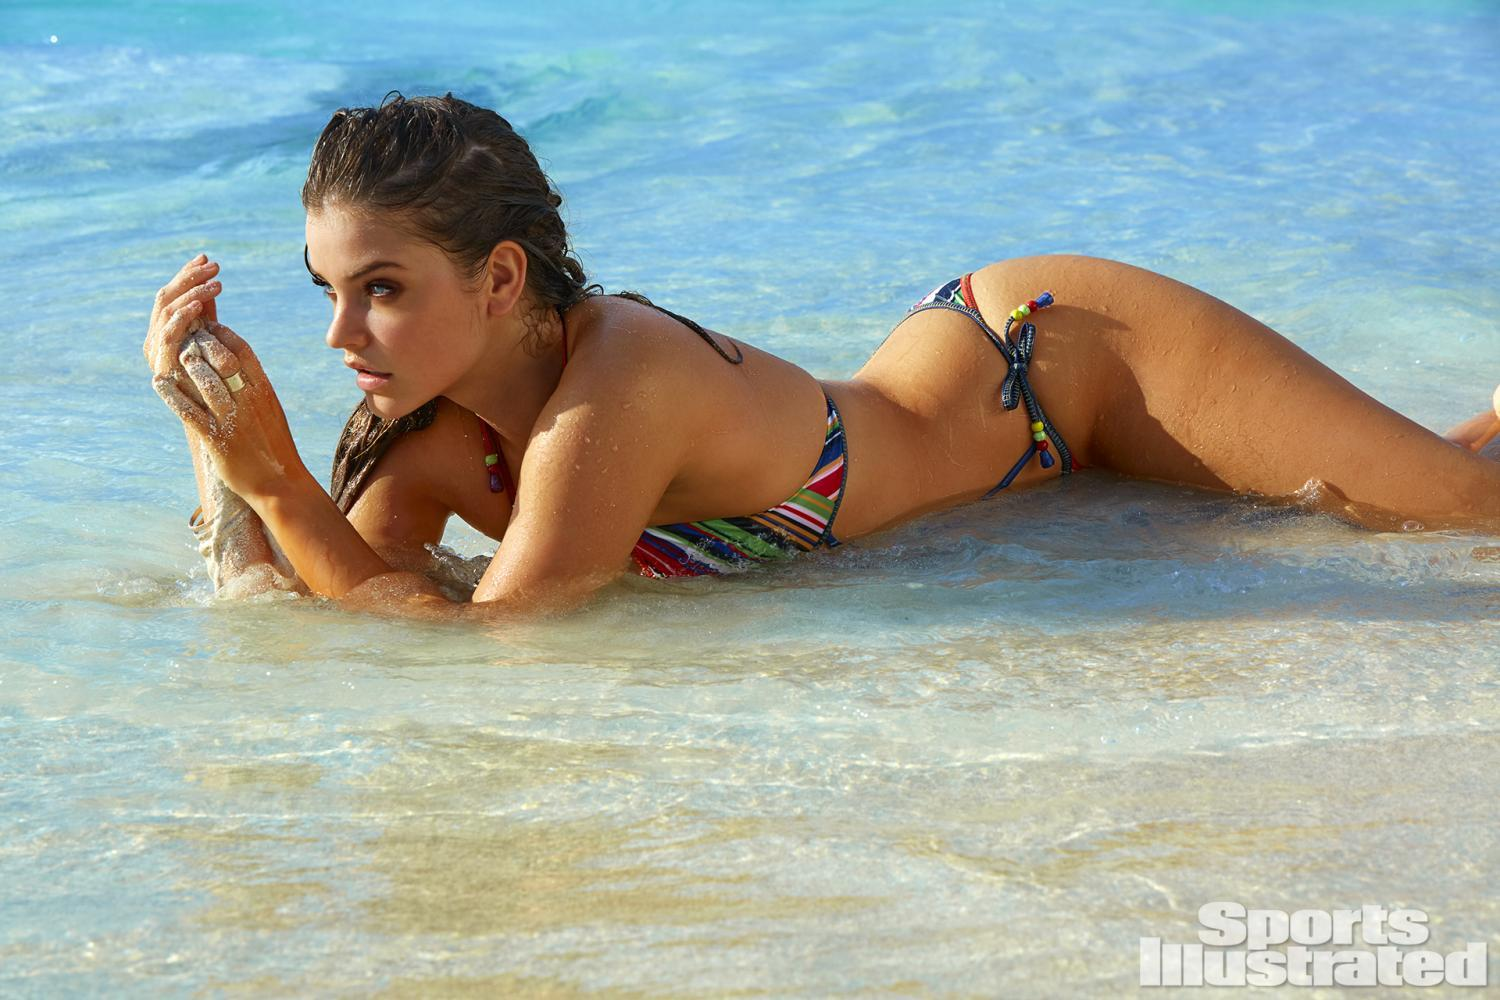 barbara-palvin-2016-photo-sports-illustrated-x160011_tk5_0616-rawwmfinal1920.jpg